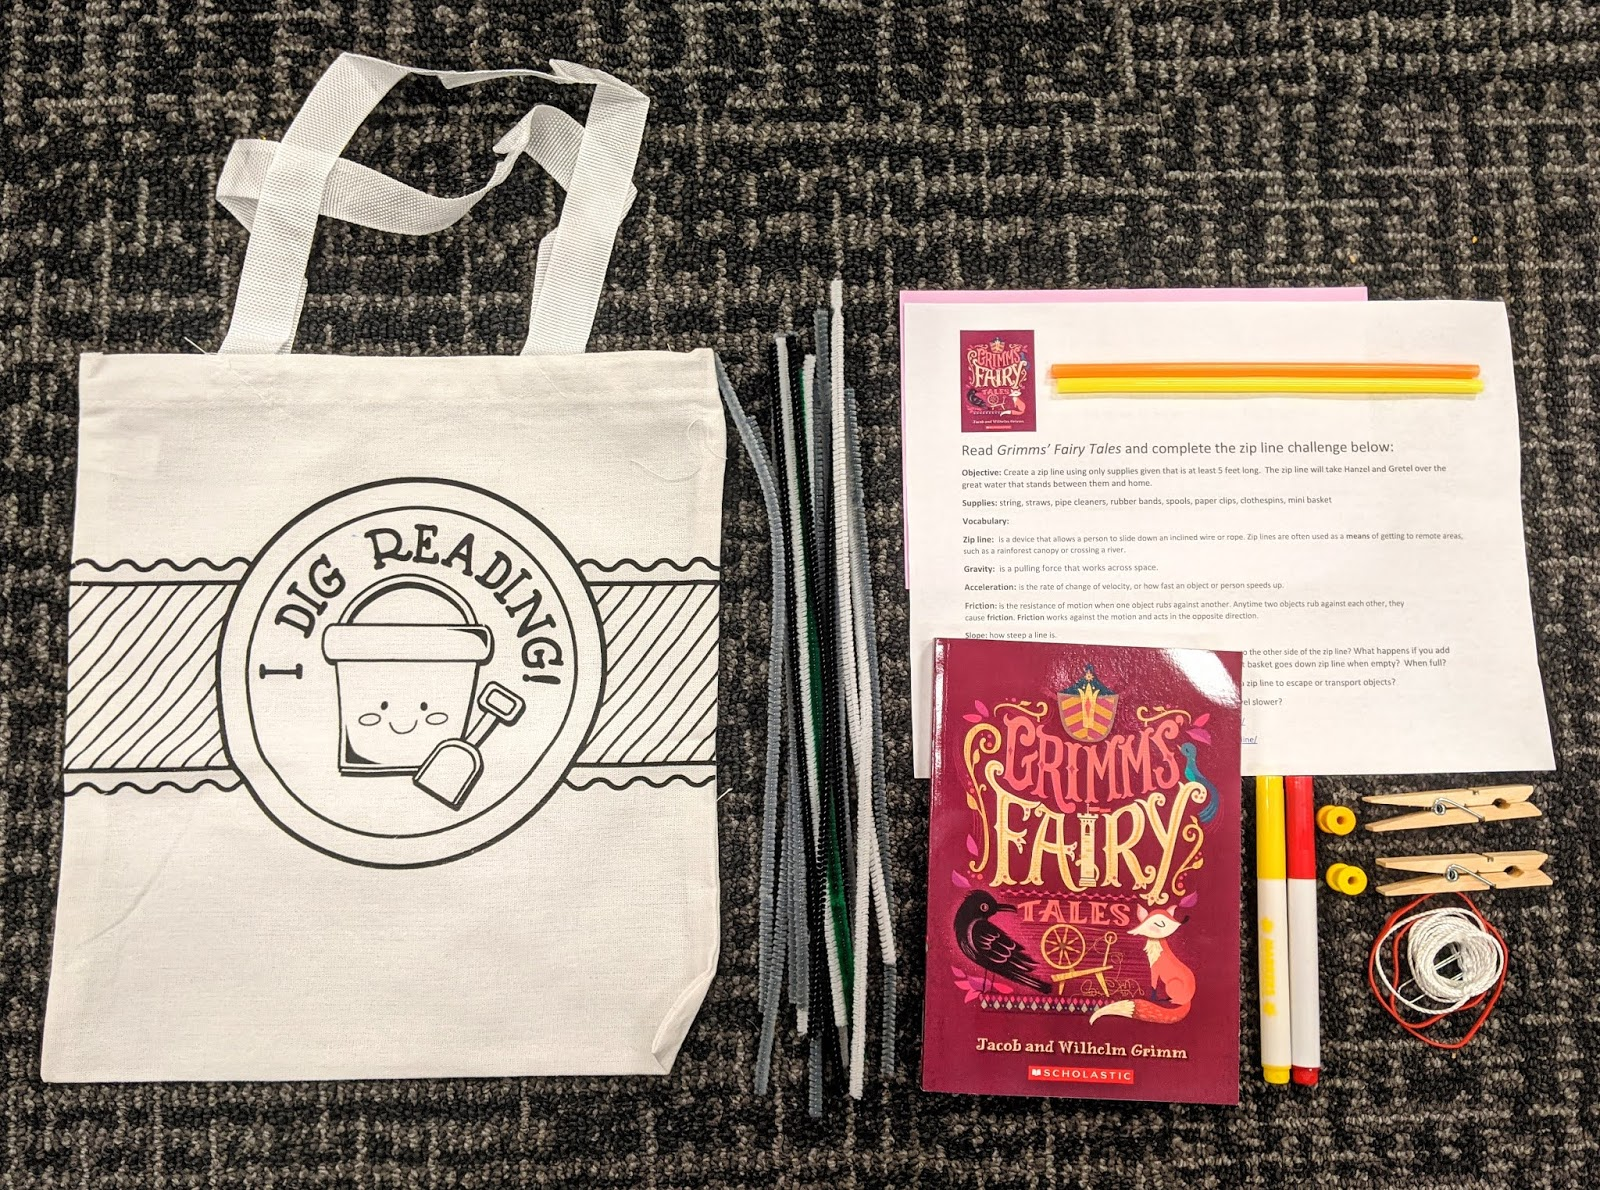 Free Stem Activity Bags New Books Whitman County Library